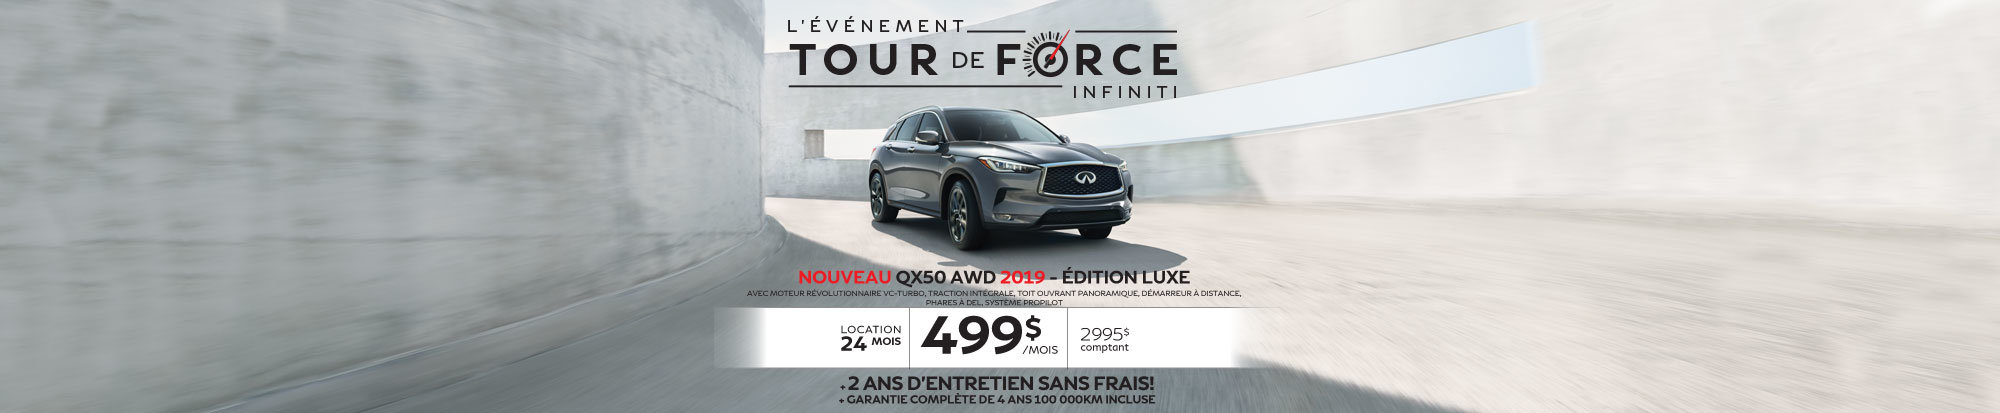 QX50 AWD 2019 édition LUXE web